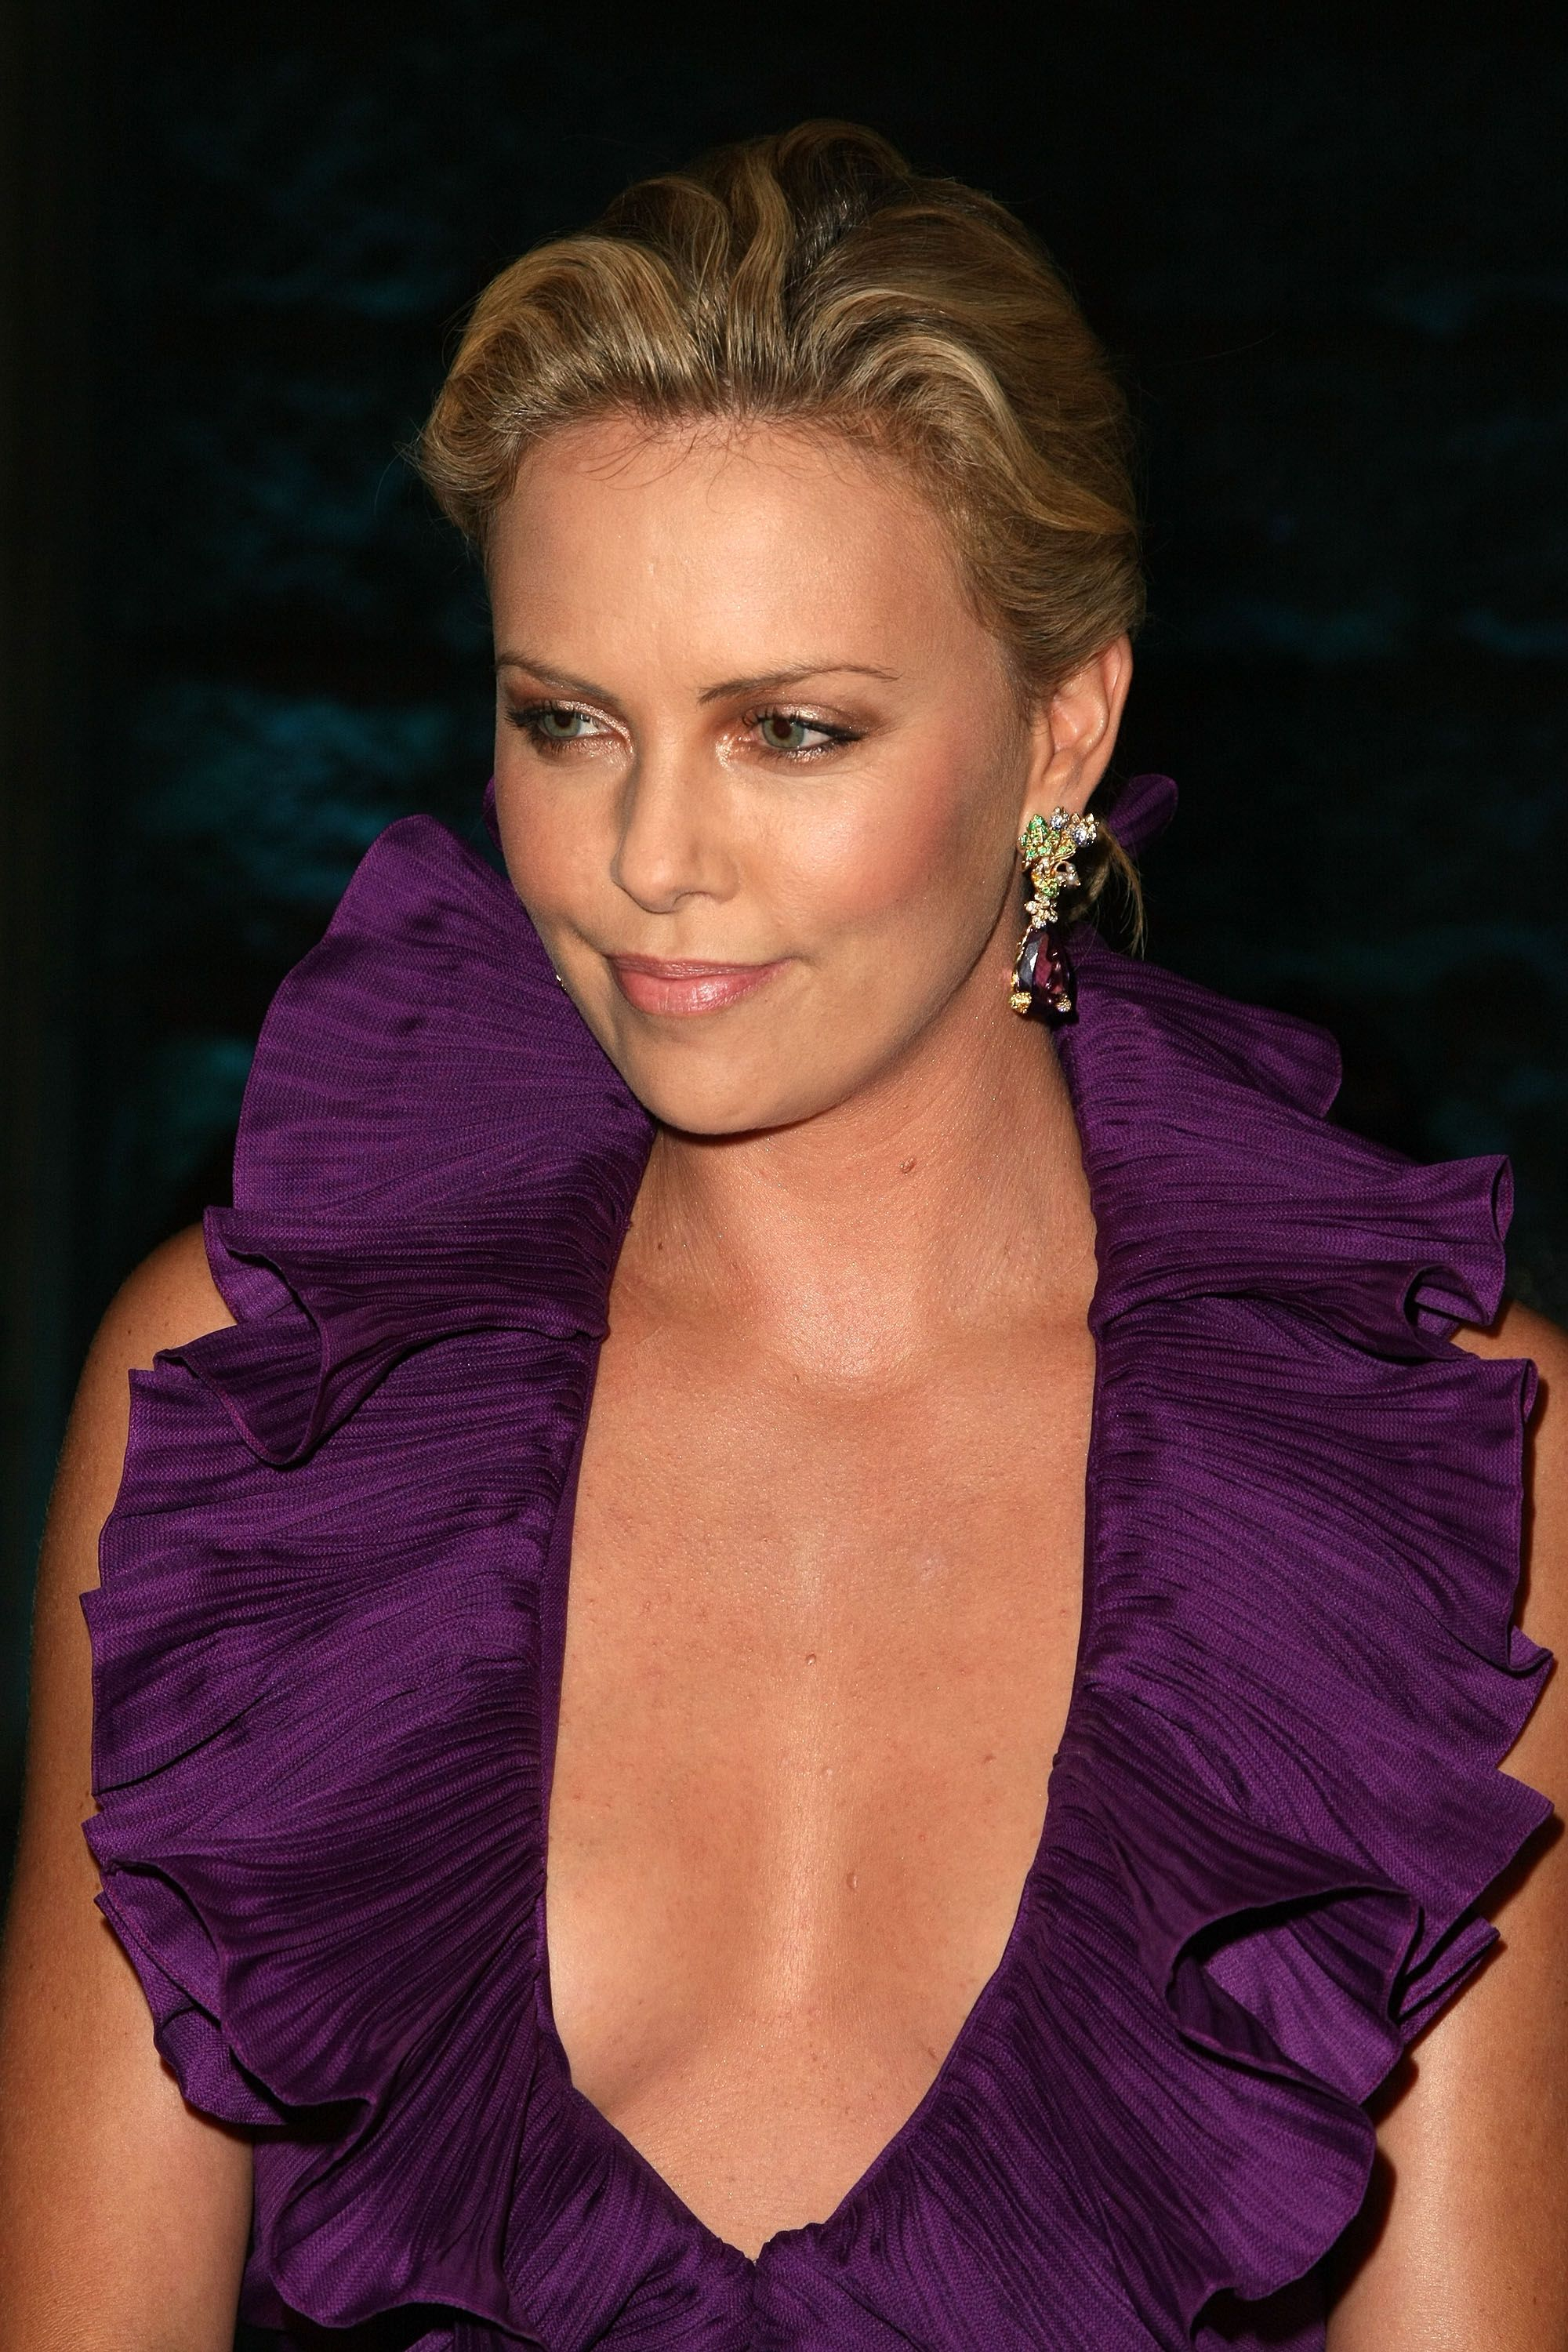 Charlize Theron Loved Her Lesbian Sex Scene in Atomic